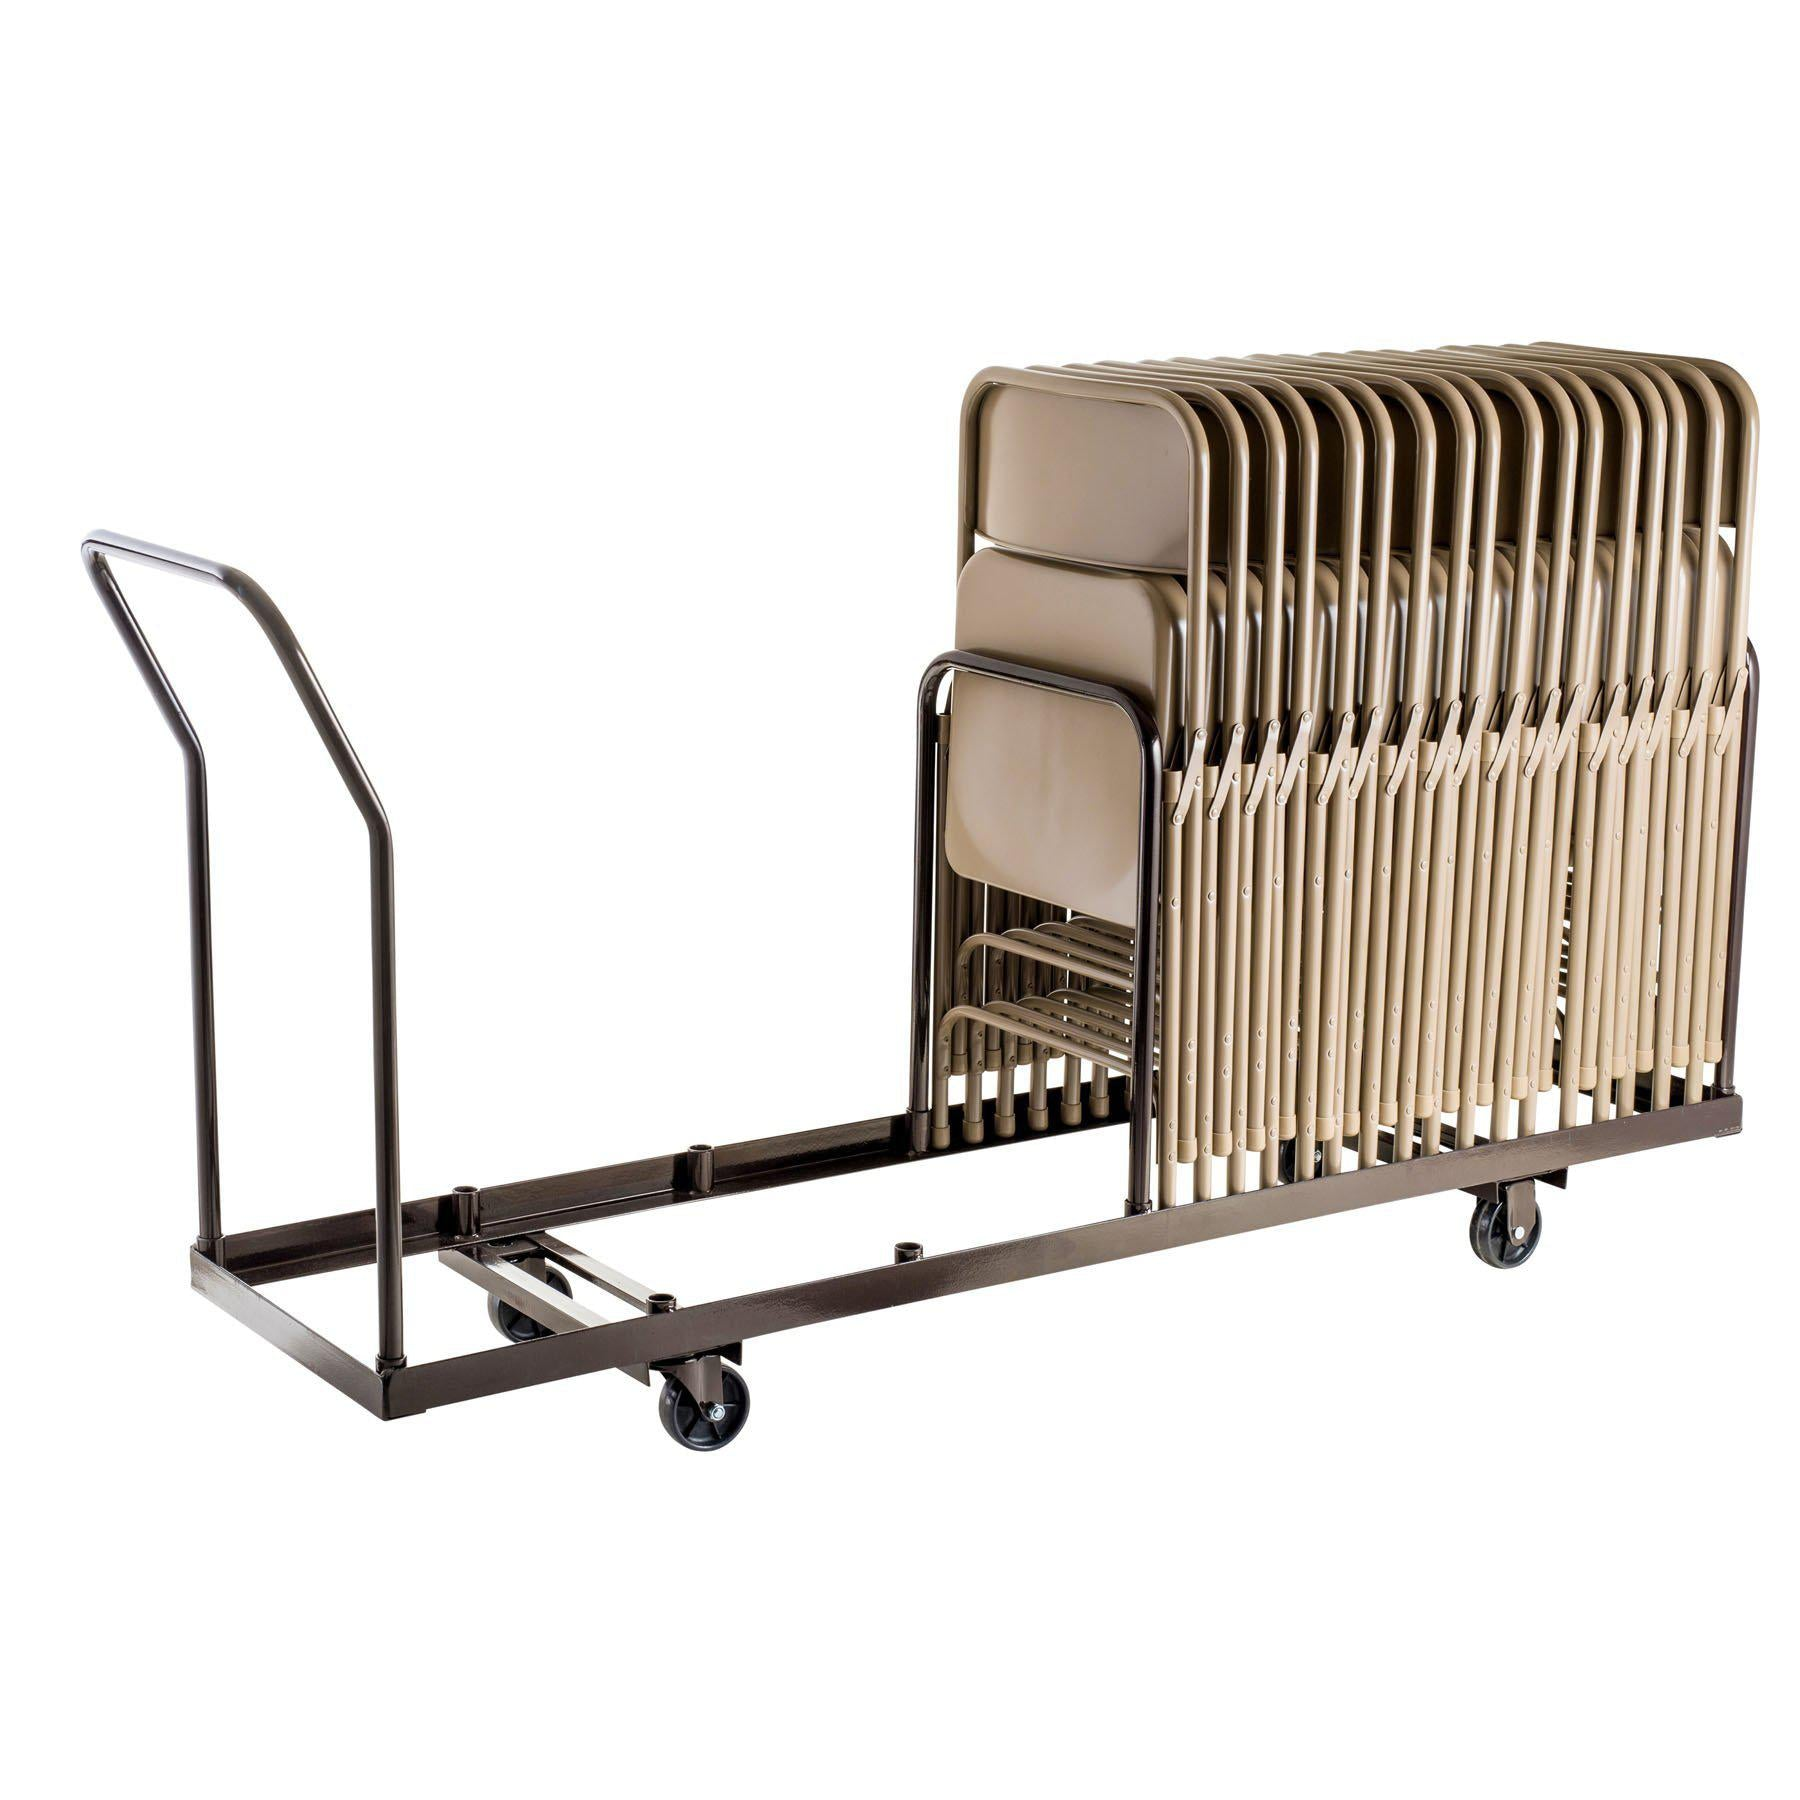 Folding Chair Dolly For Vertical storage, 35 Chair Capacity